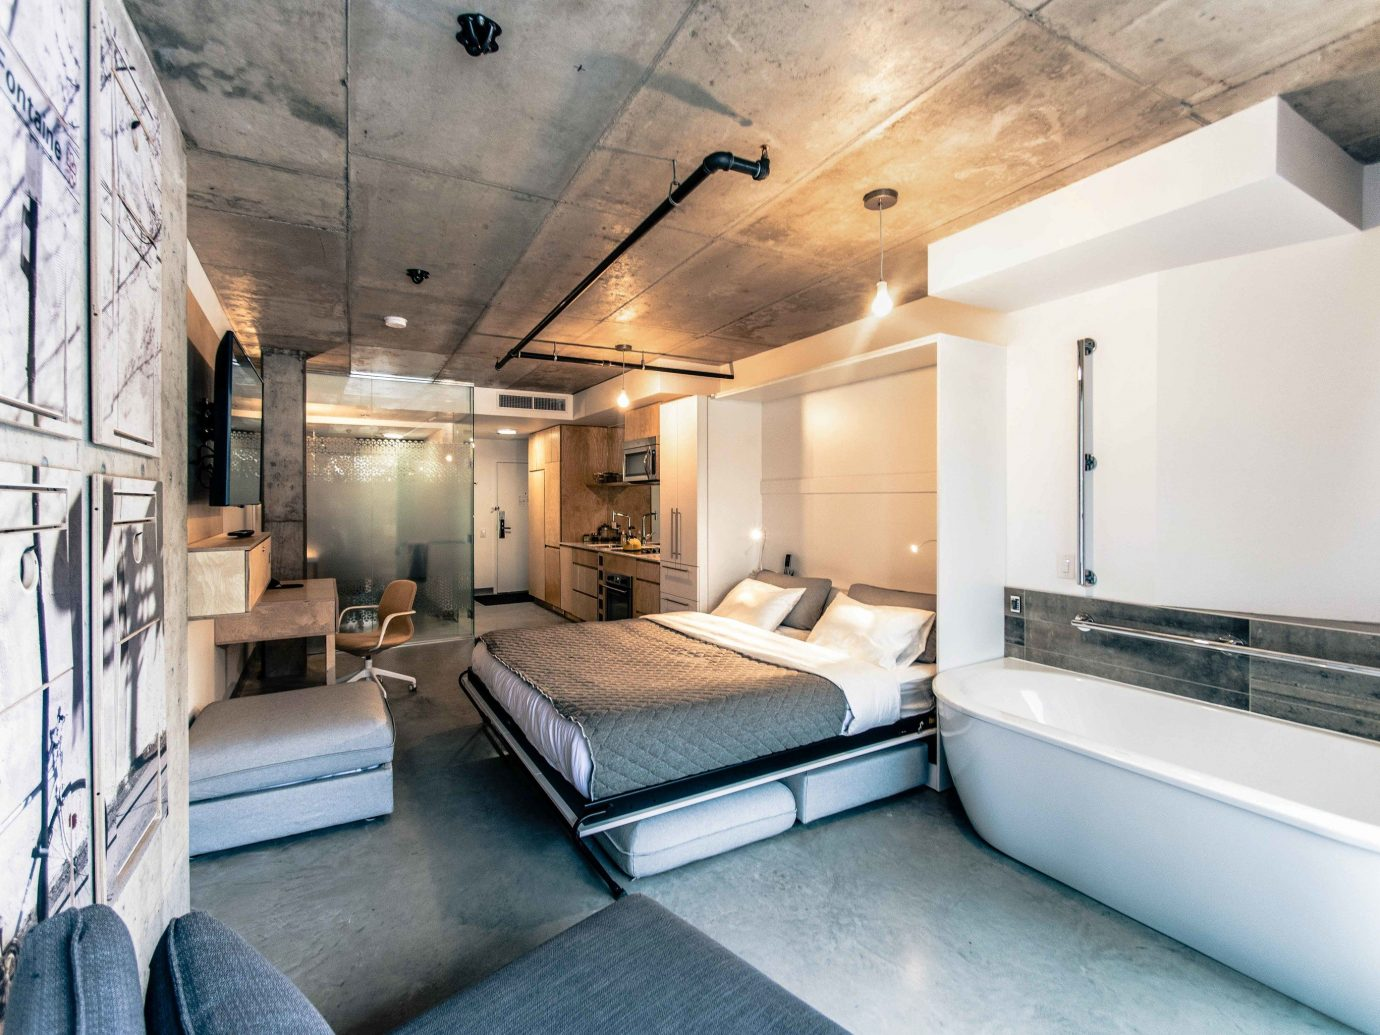 Boutique Hotels Chicago Hotels indoor floor ceiling room interior design loft Suite